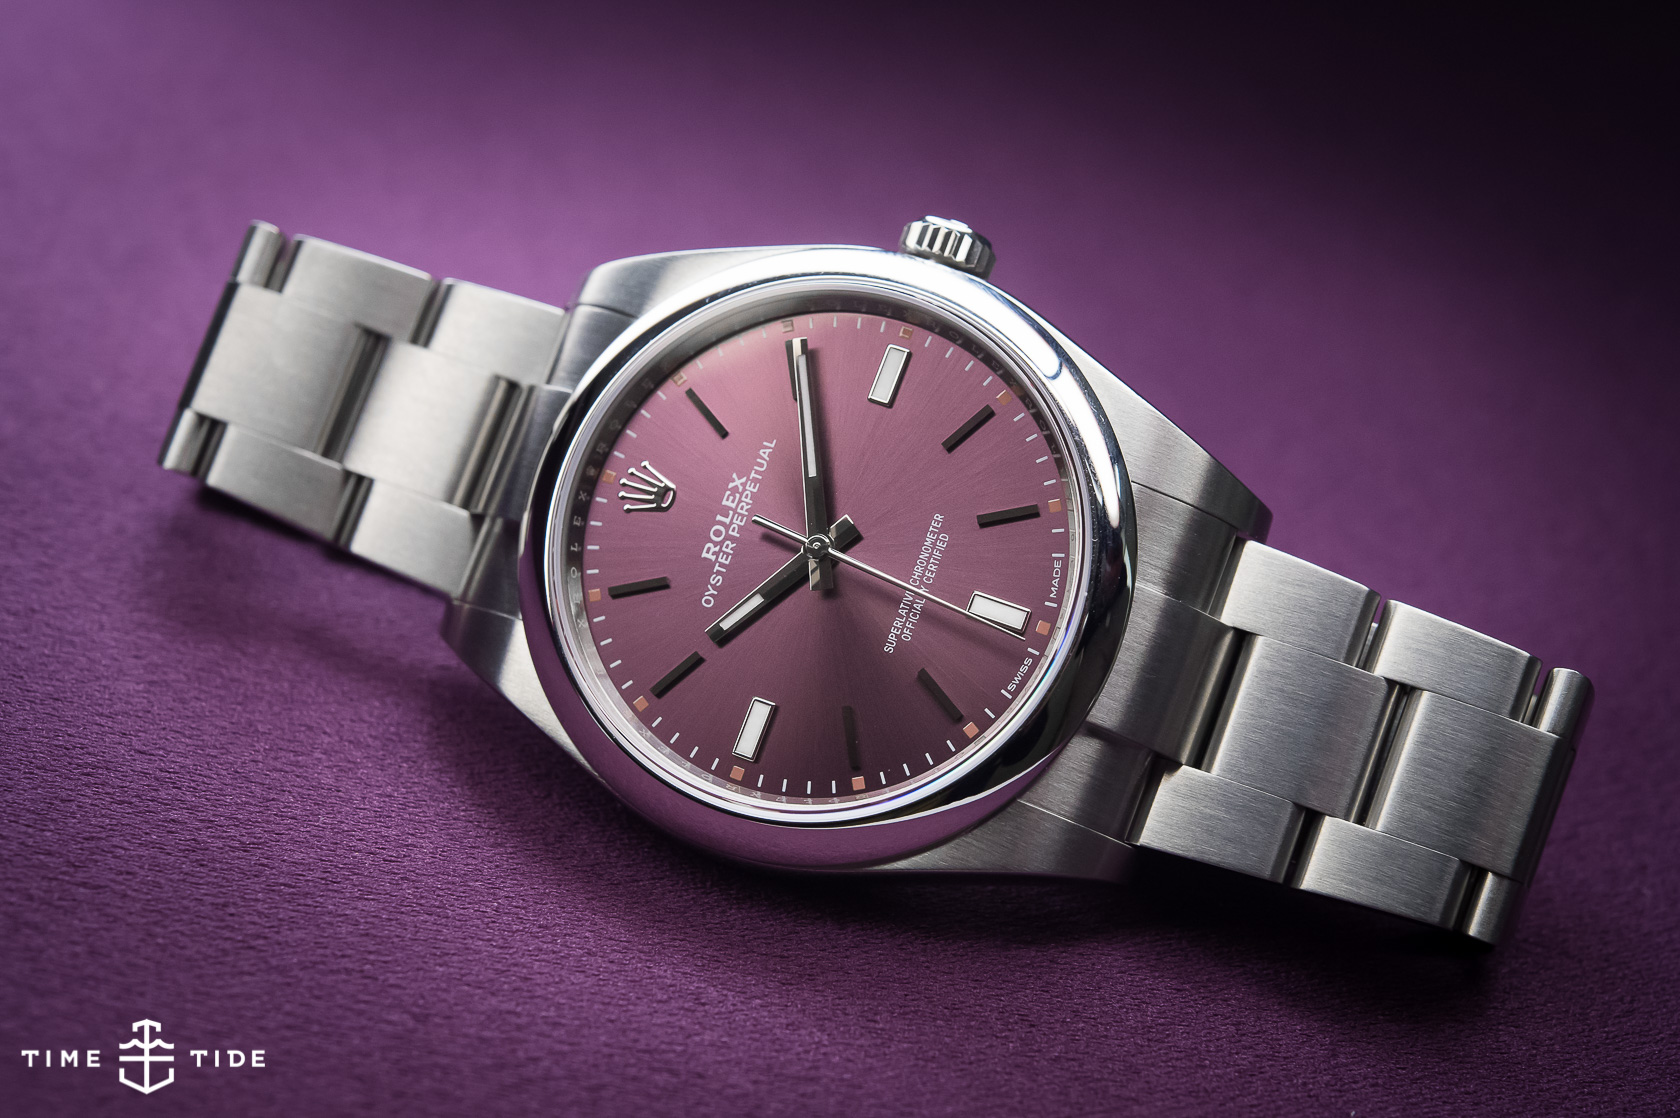 Best Of Baselworld 2015 As Voted By You